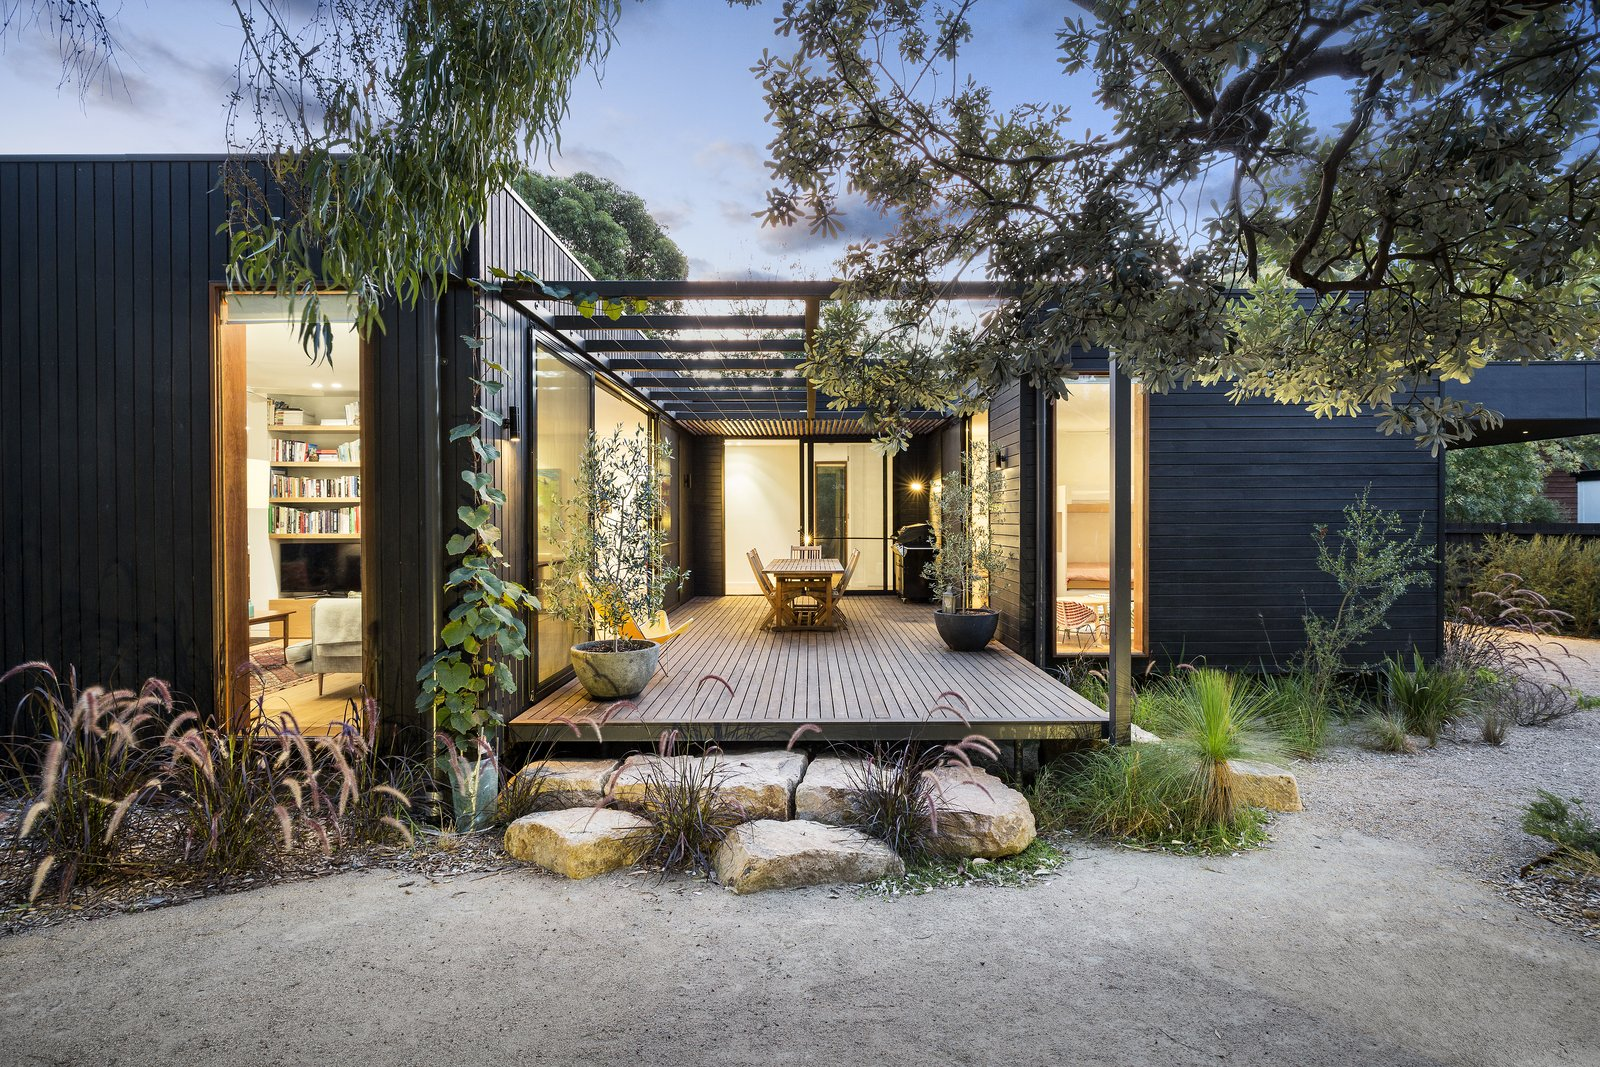 Garden, Shrubs, Side Yard, Trees, Grass, Wood, Boulders, Walkways, Large, Metal, Decking, Exterior, House, and Wood Architect: Pleysier Perkins, Location: Merricks Beach, Victoria, Australia  Exterior Large Grass Photos from The Merricks Beach House